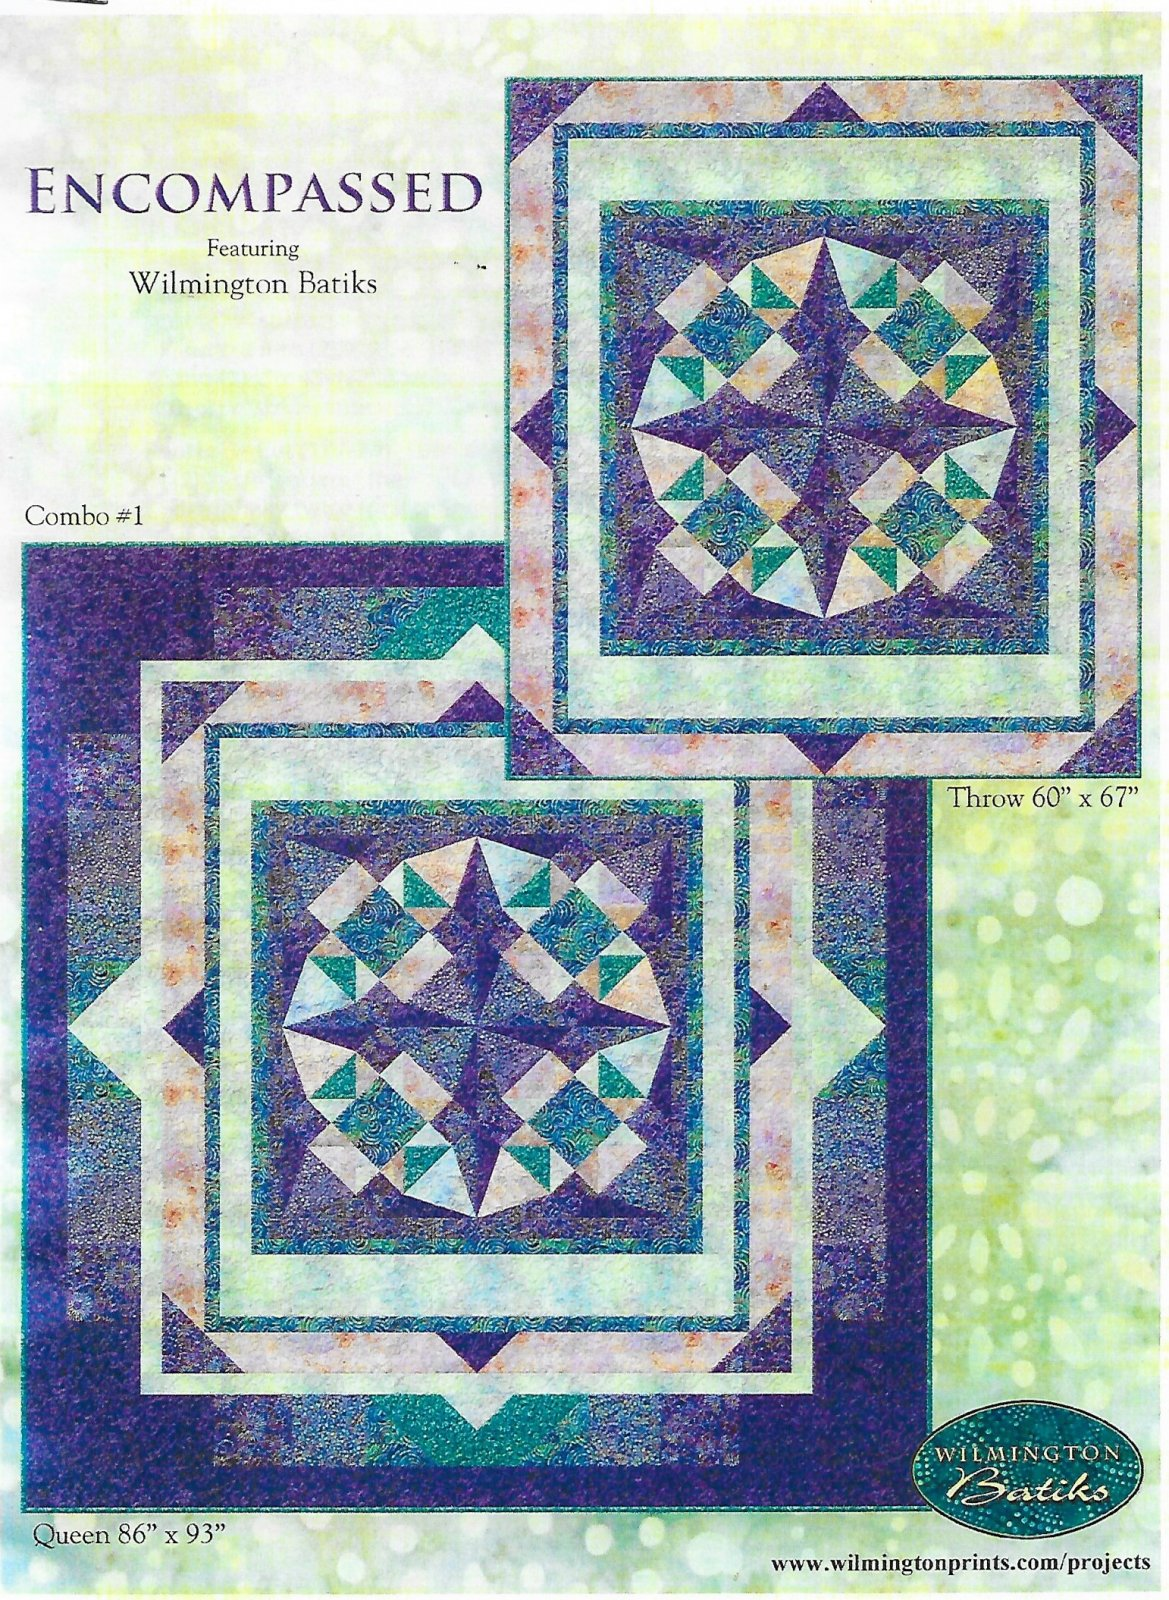 Encompassed Batik Quilt Kit